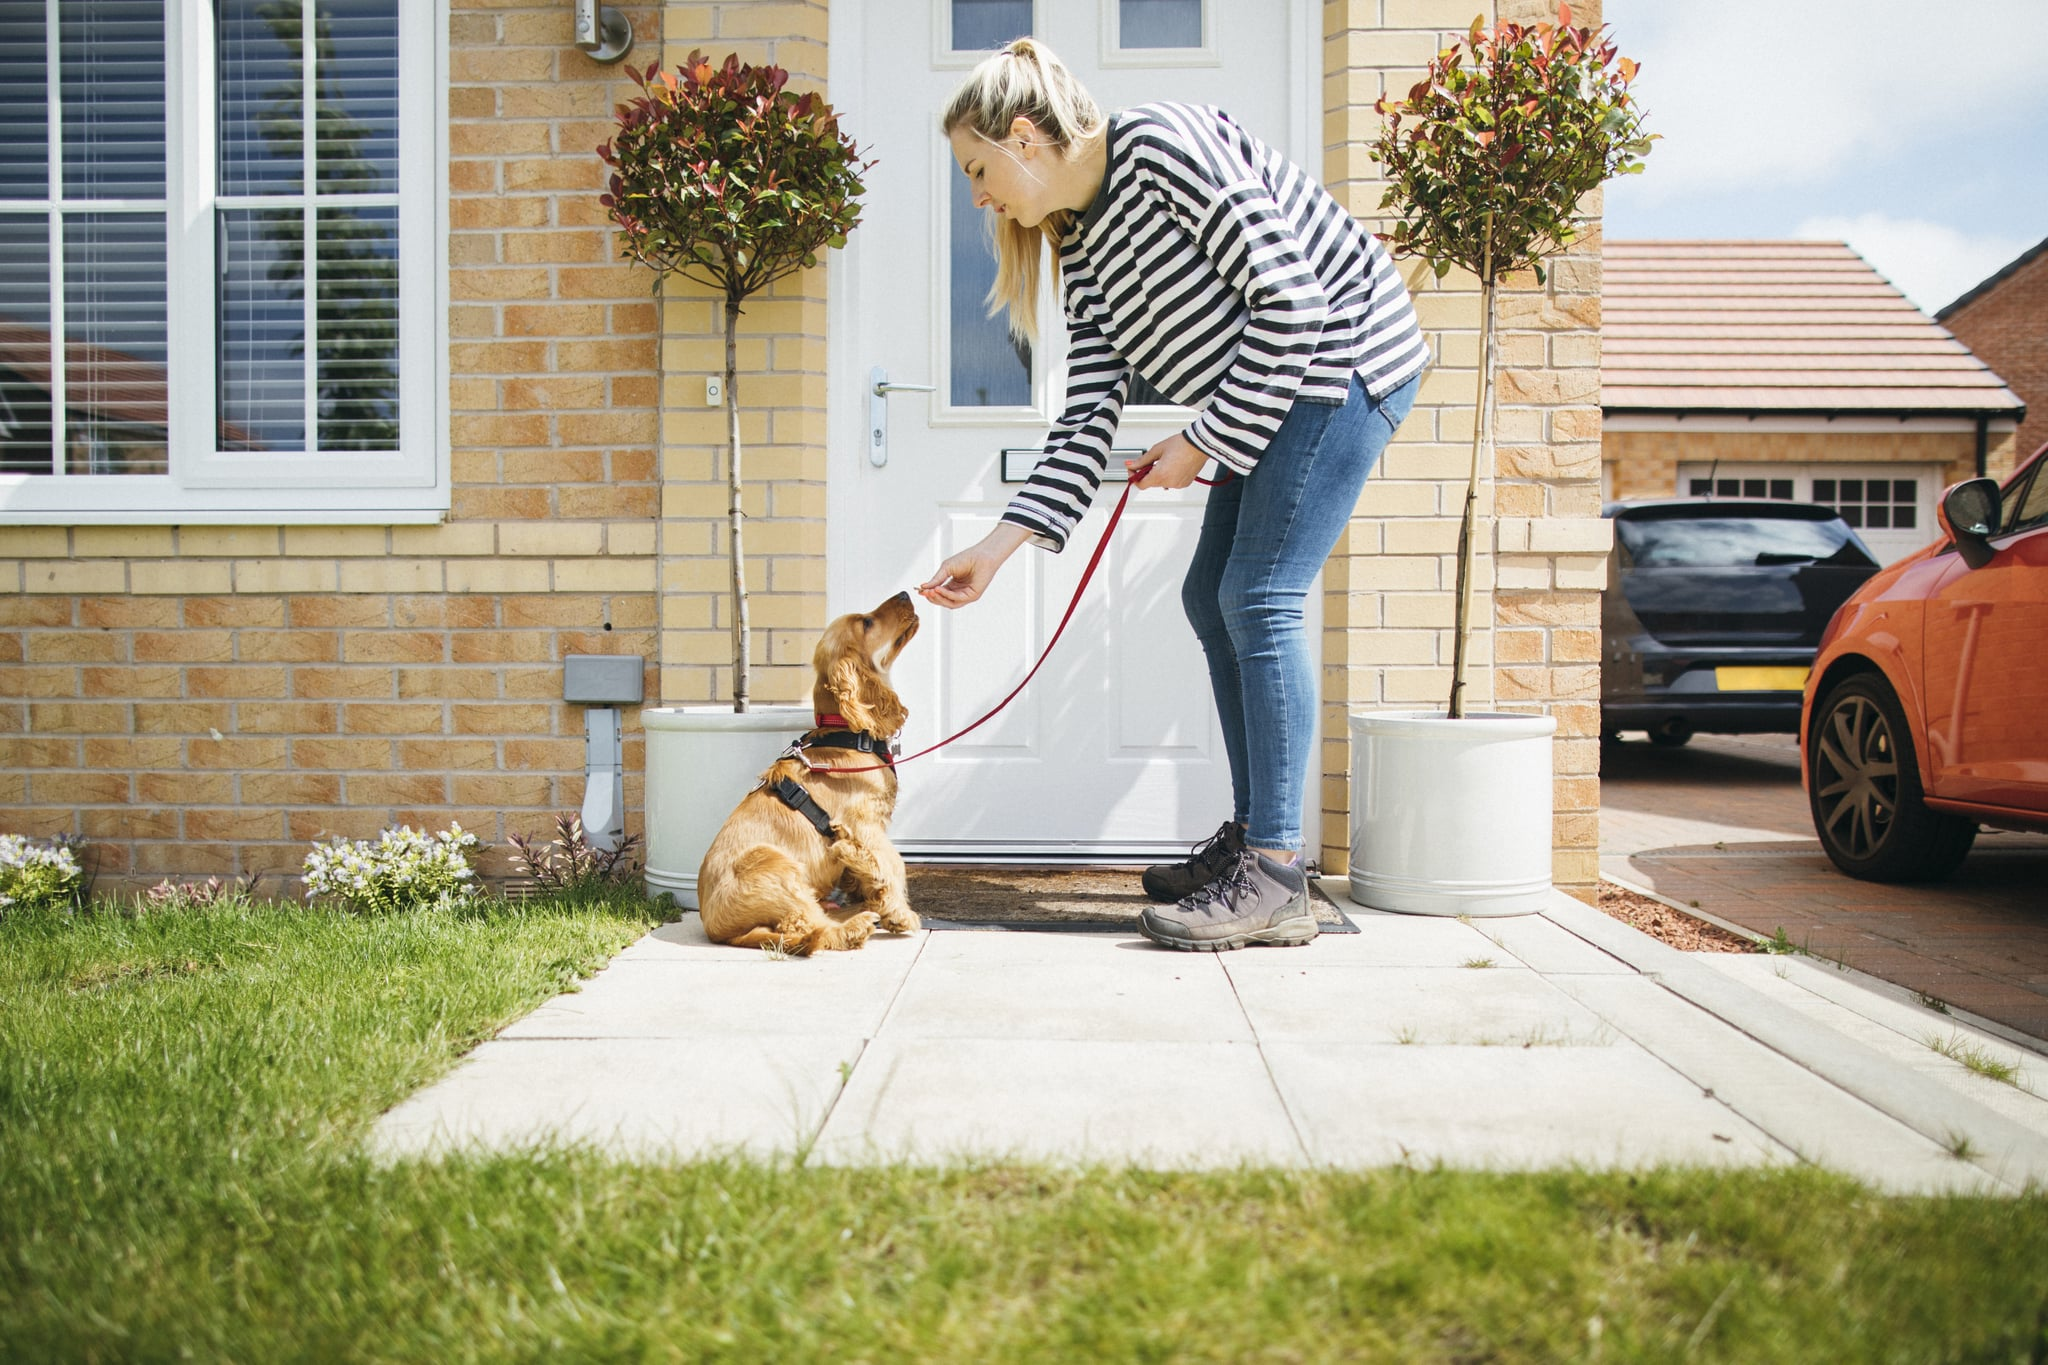 Some Helpful Ideas For Training Your Dog